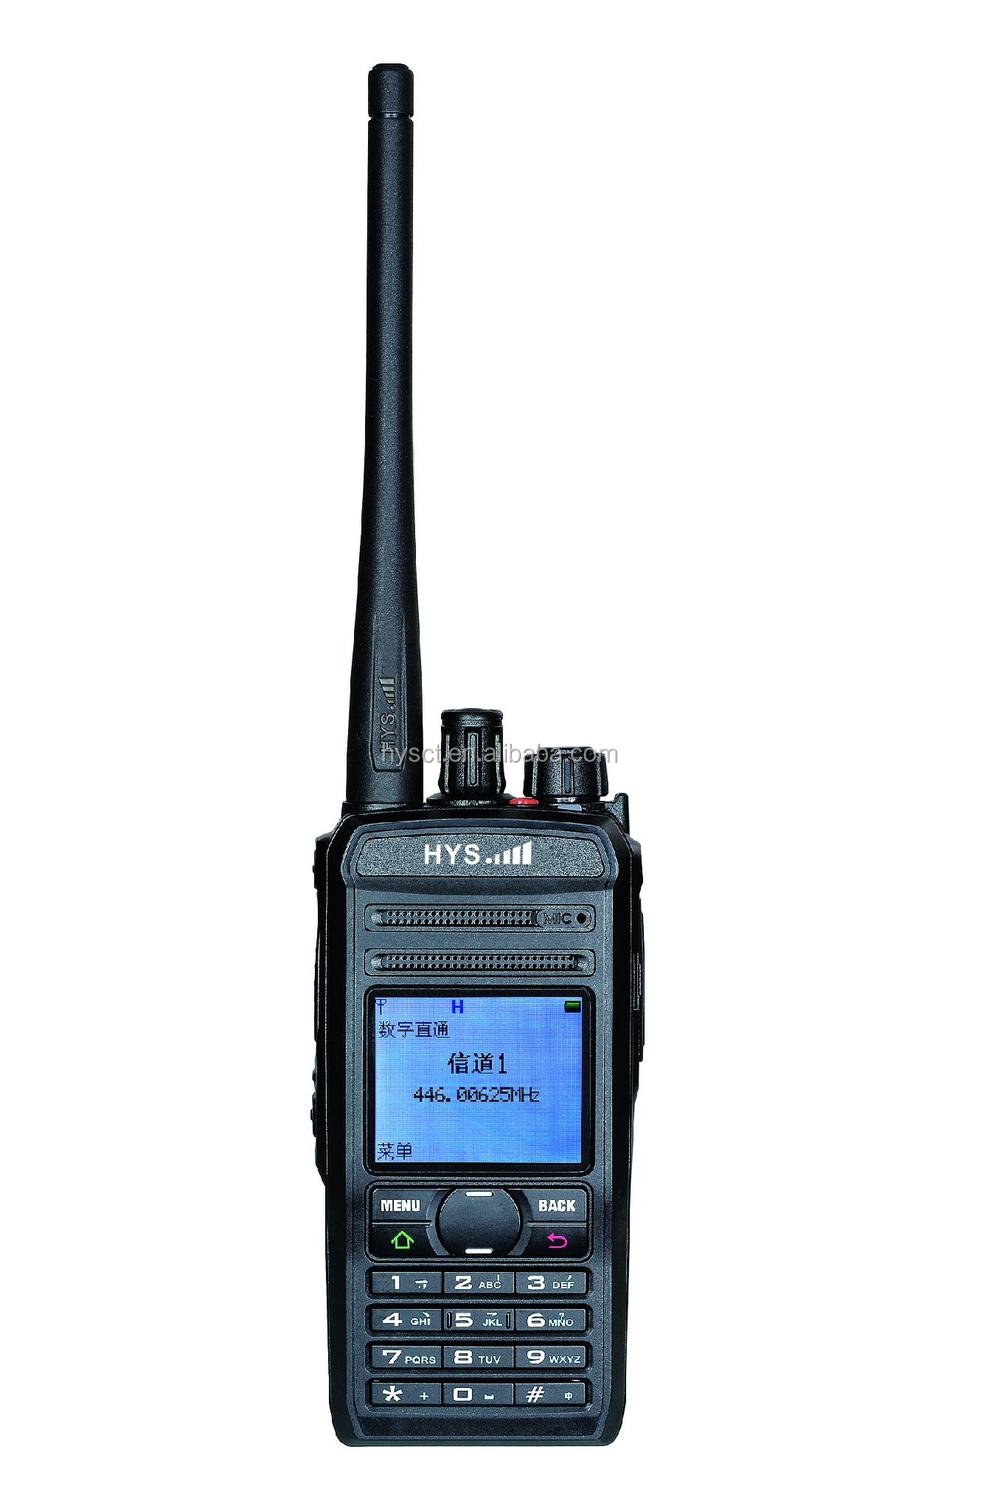 DPMR with FM radio Digital Handheld Radio TC-819D